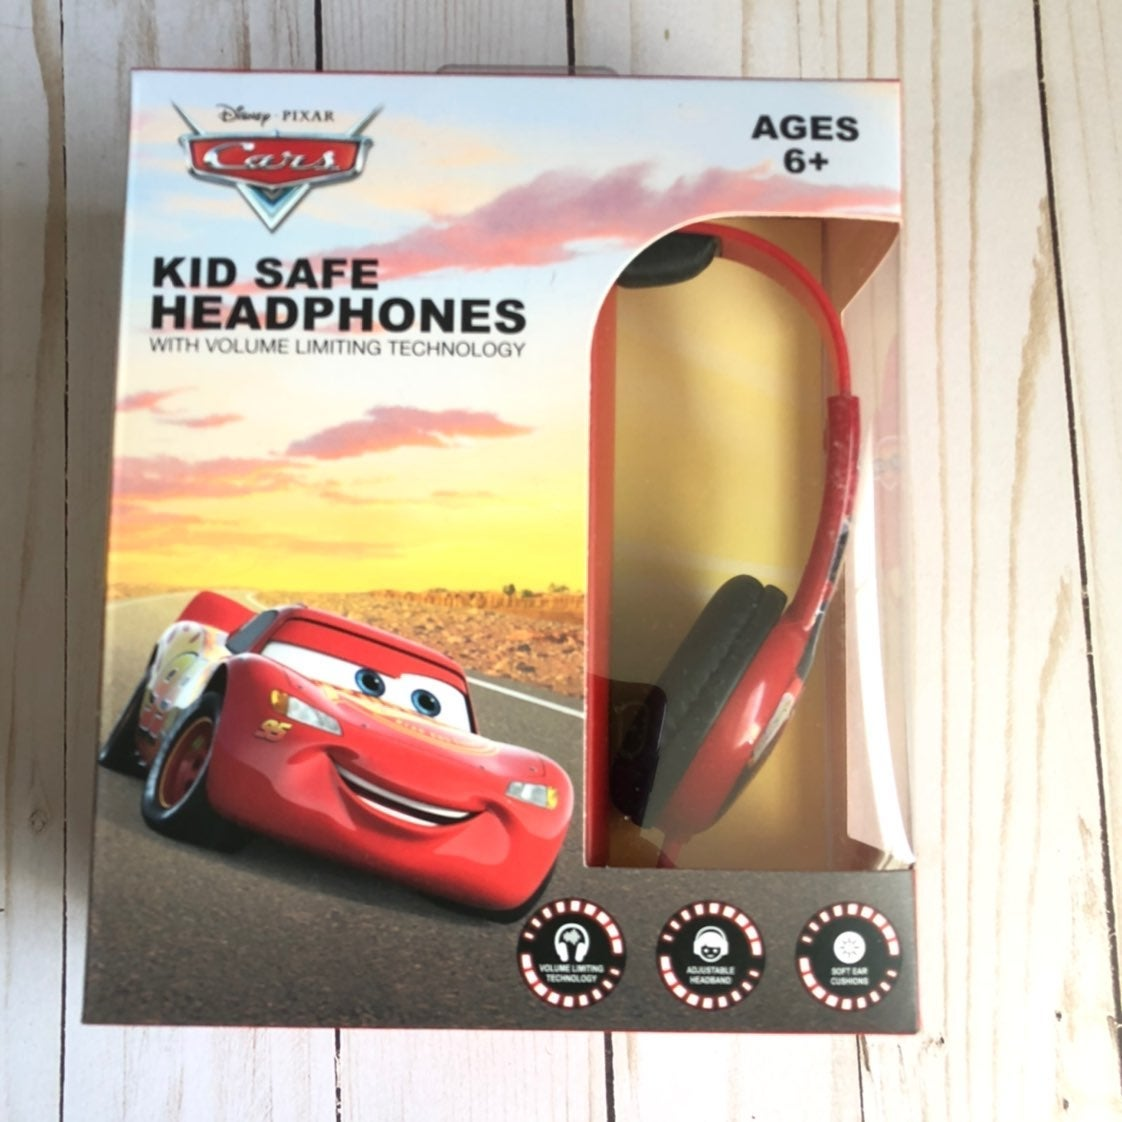 Disney Pixar Cars Kods Headphones